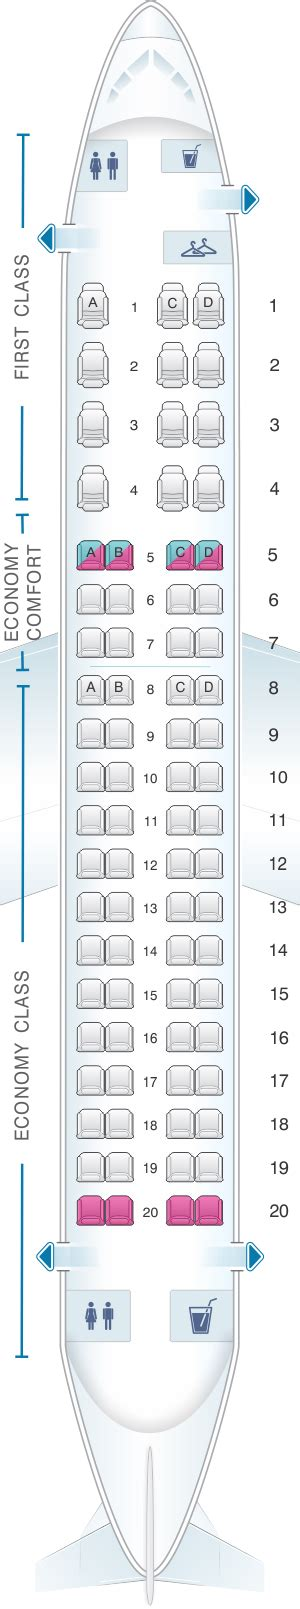 embraer 175 jet seating chart seat map delta airlines embraer 175 seatmaestro